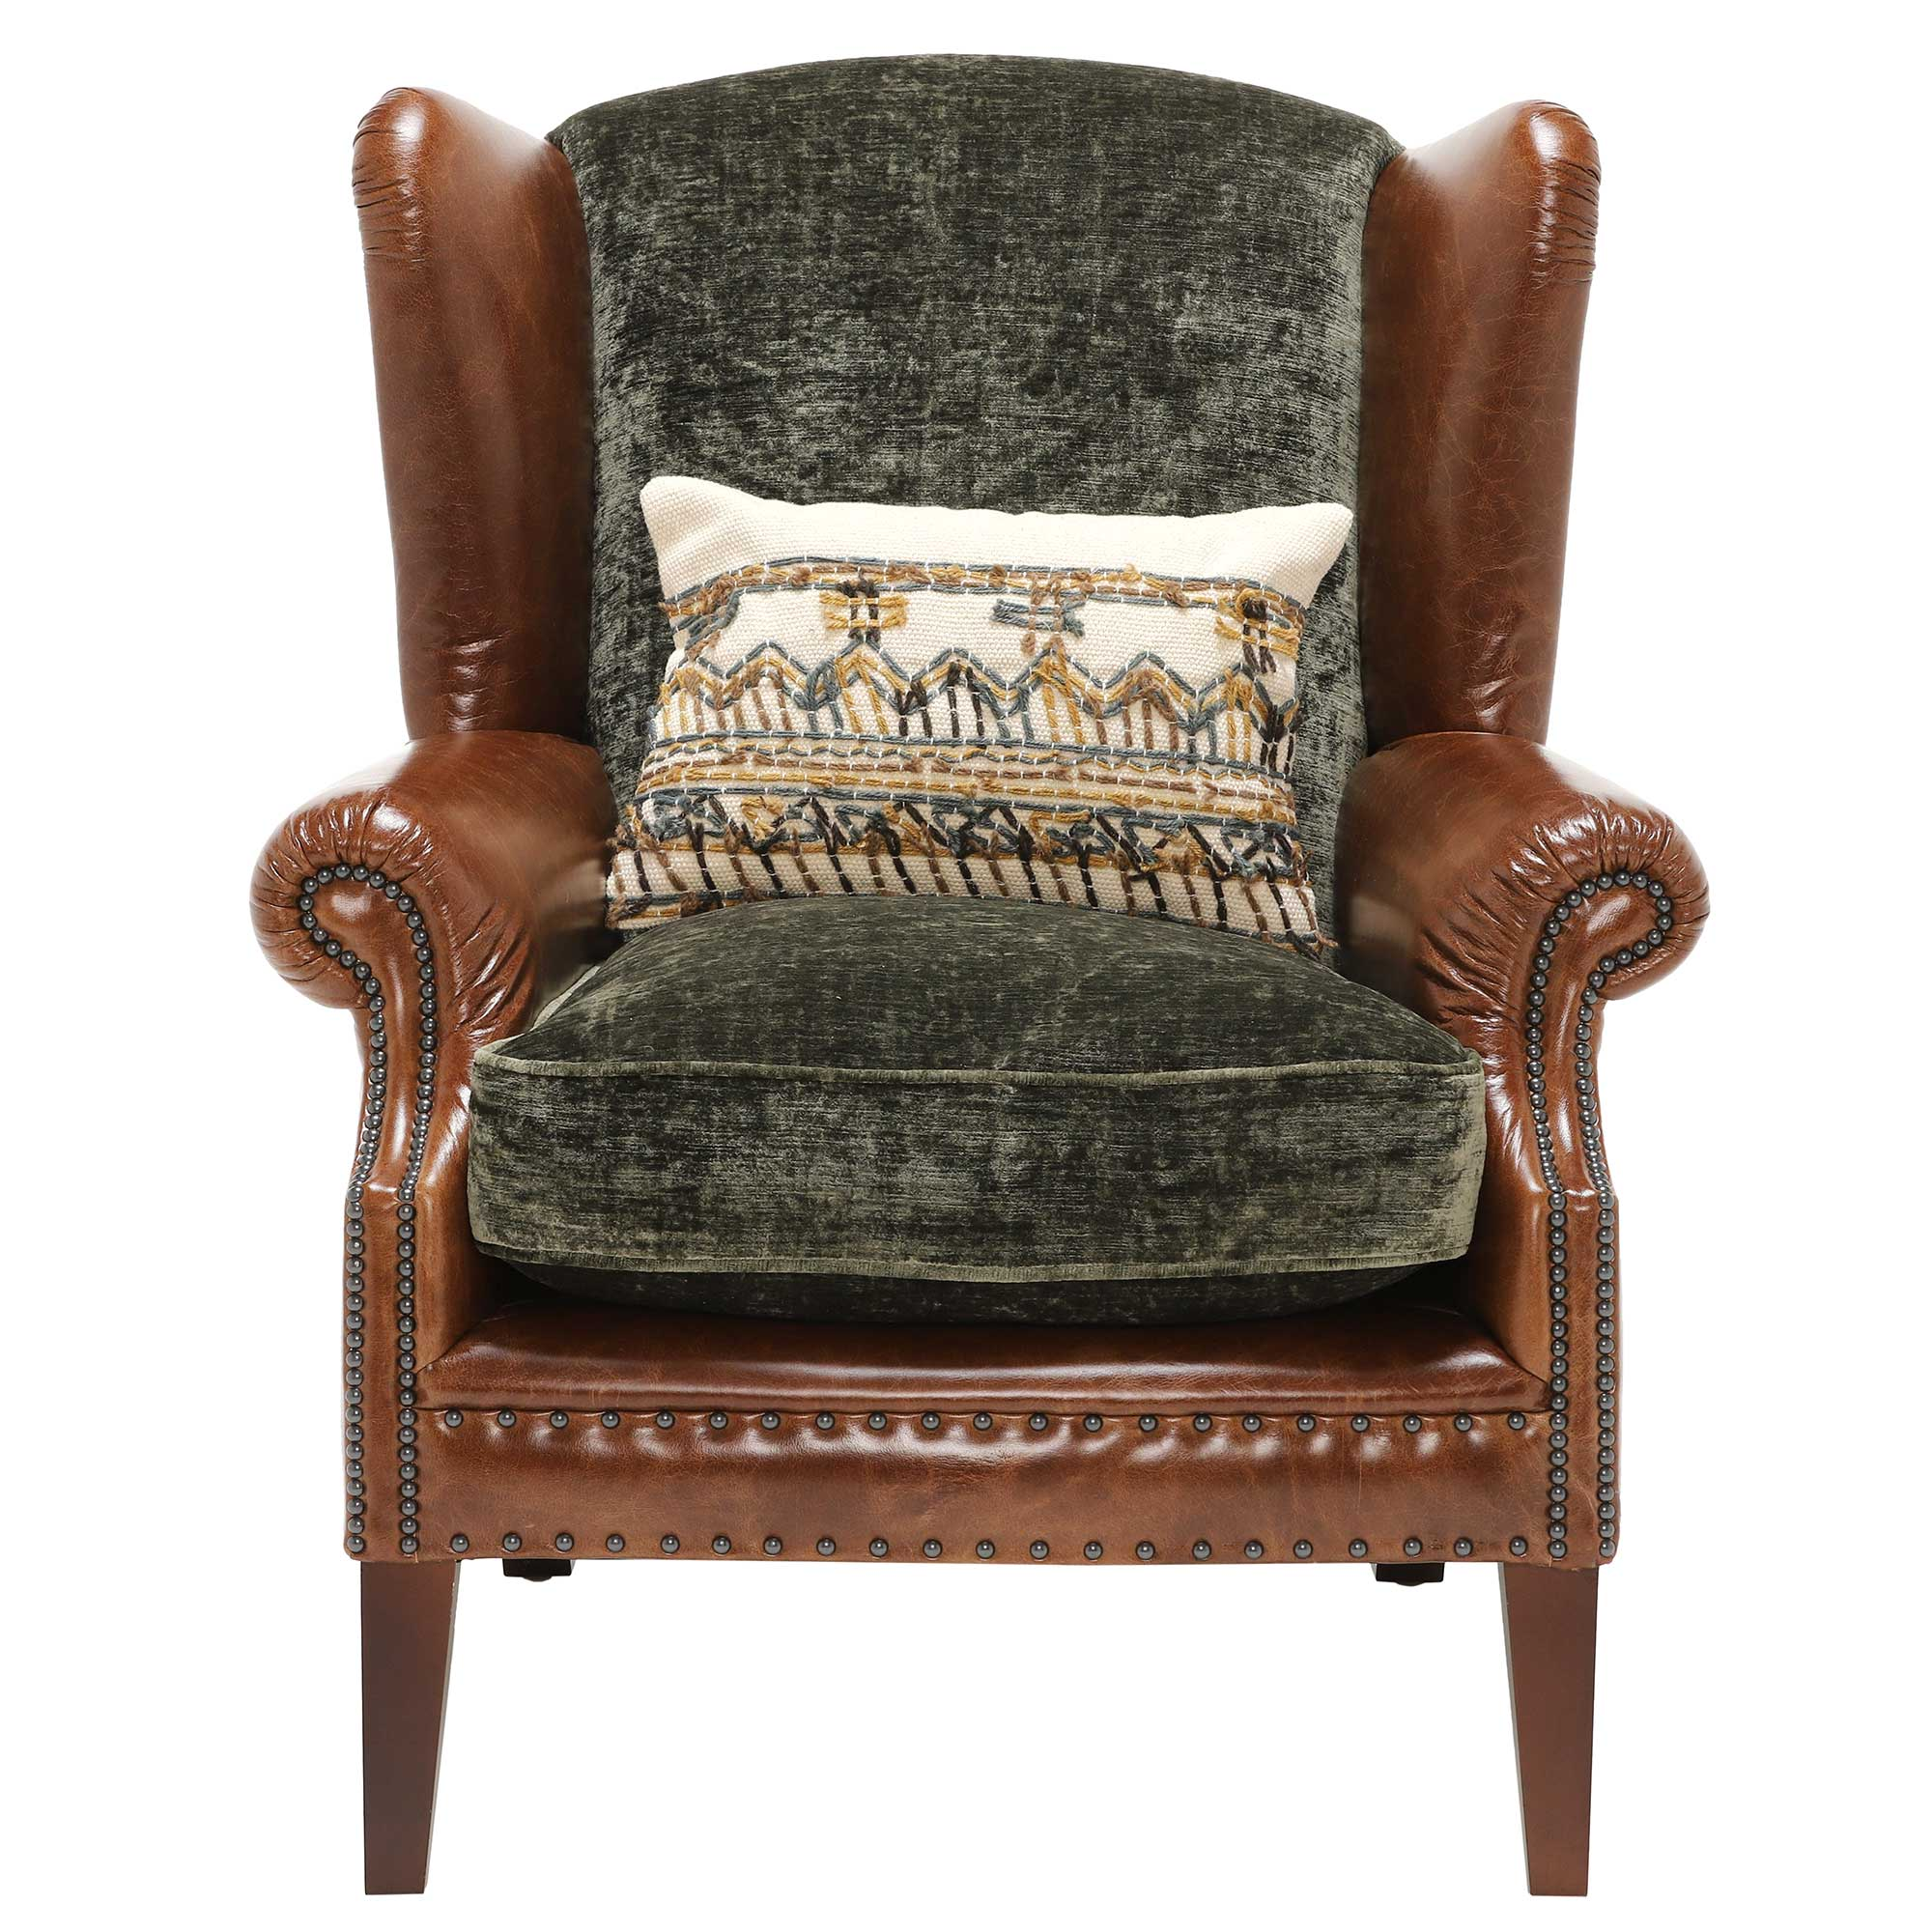 CONSTABLE WING CHAIR - FRONT DETAIL